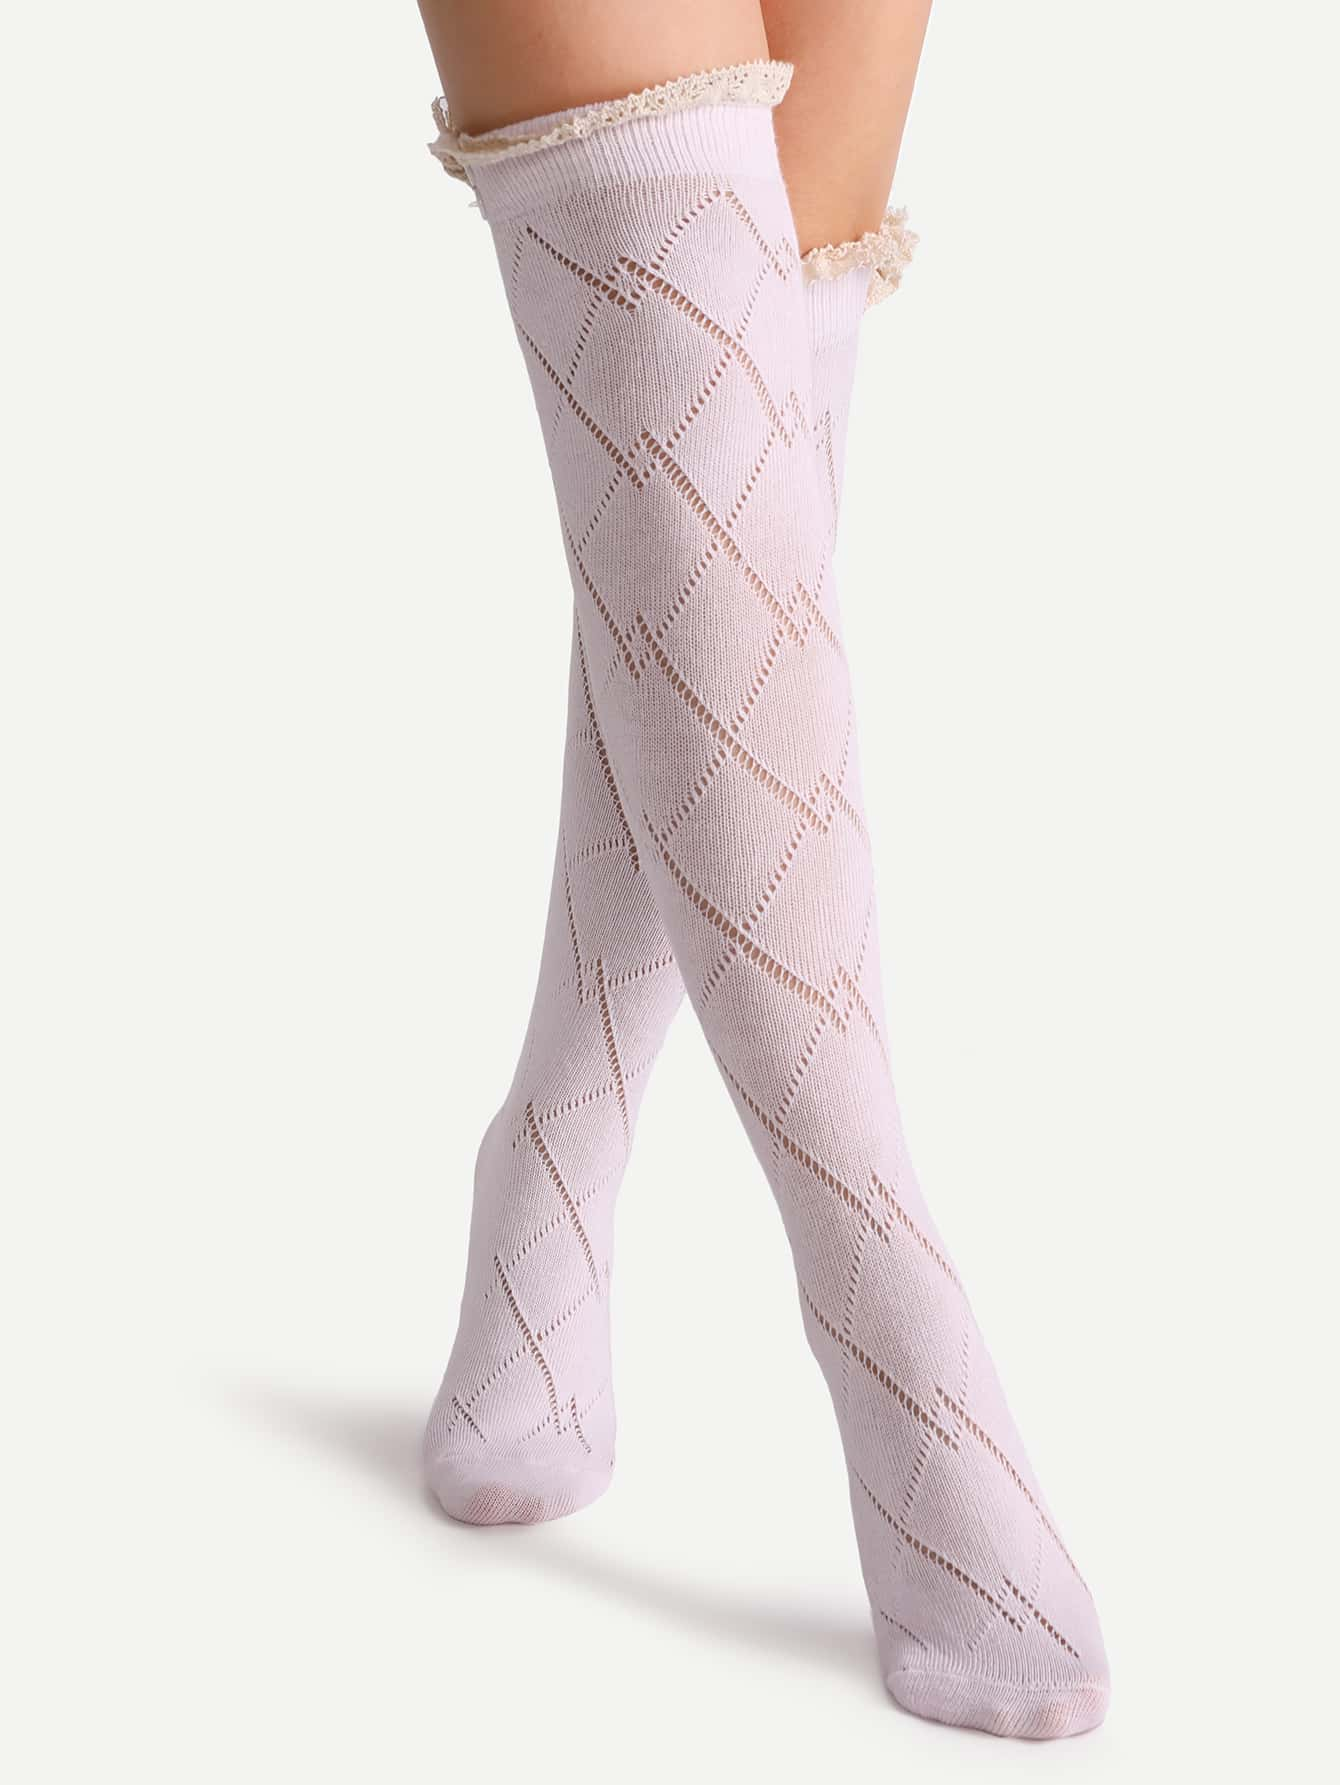 Pink Lace Button Hollow Out Knee High SocksPink Lace Button Hollow Out Knee High Socks<br><br>color: Pink<br>size: one-size